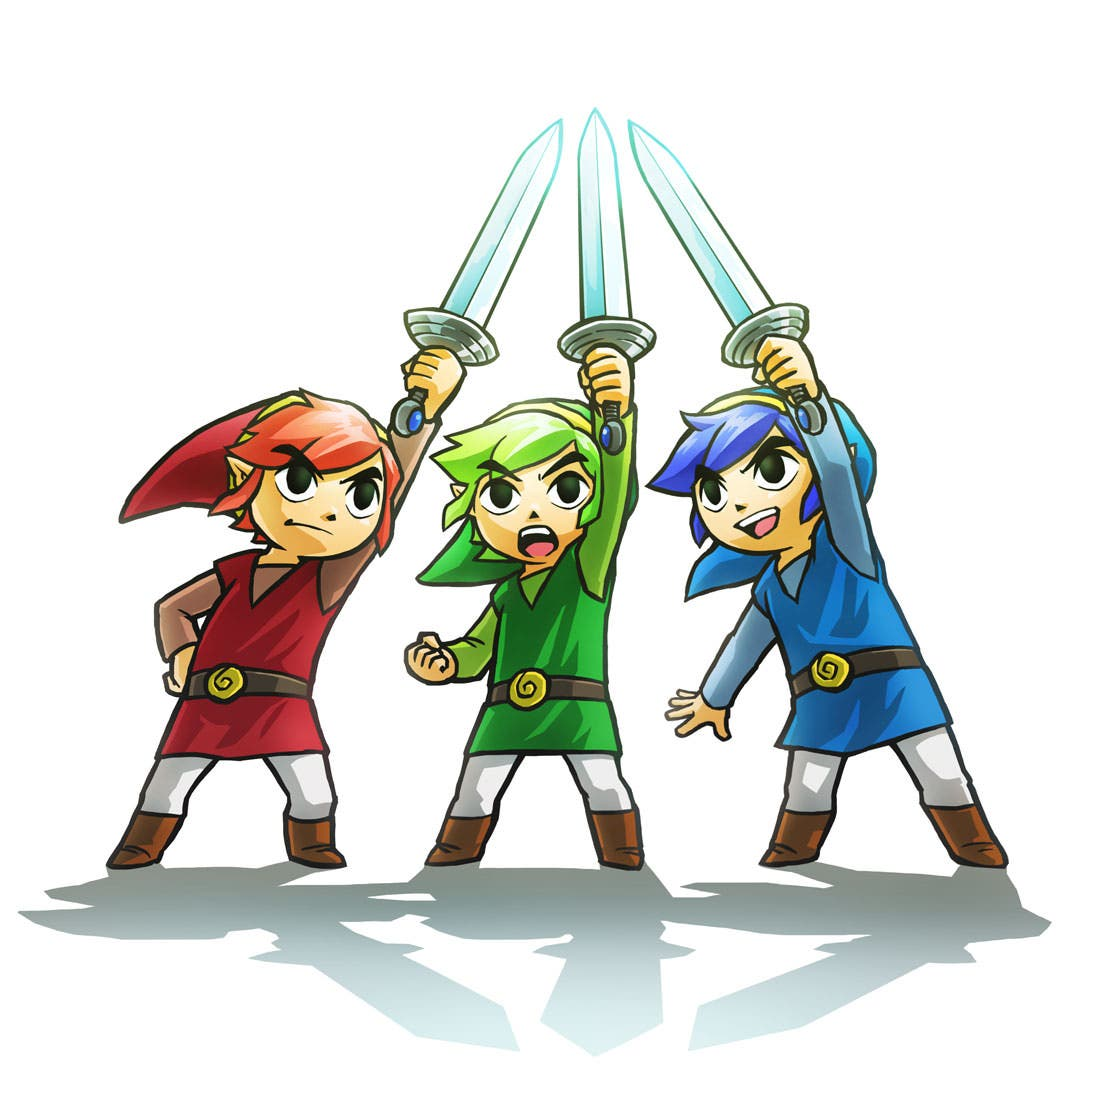 Vídeo gameplay de todos los jefes finales de 'The Legend of Zelda: Triforce Heroes'